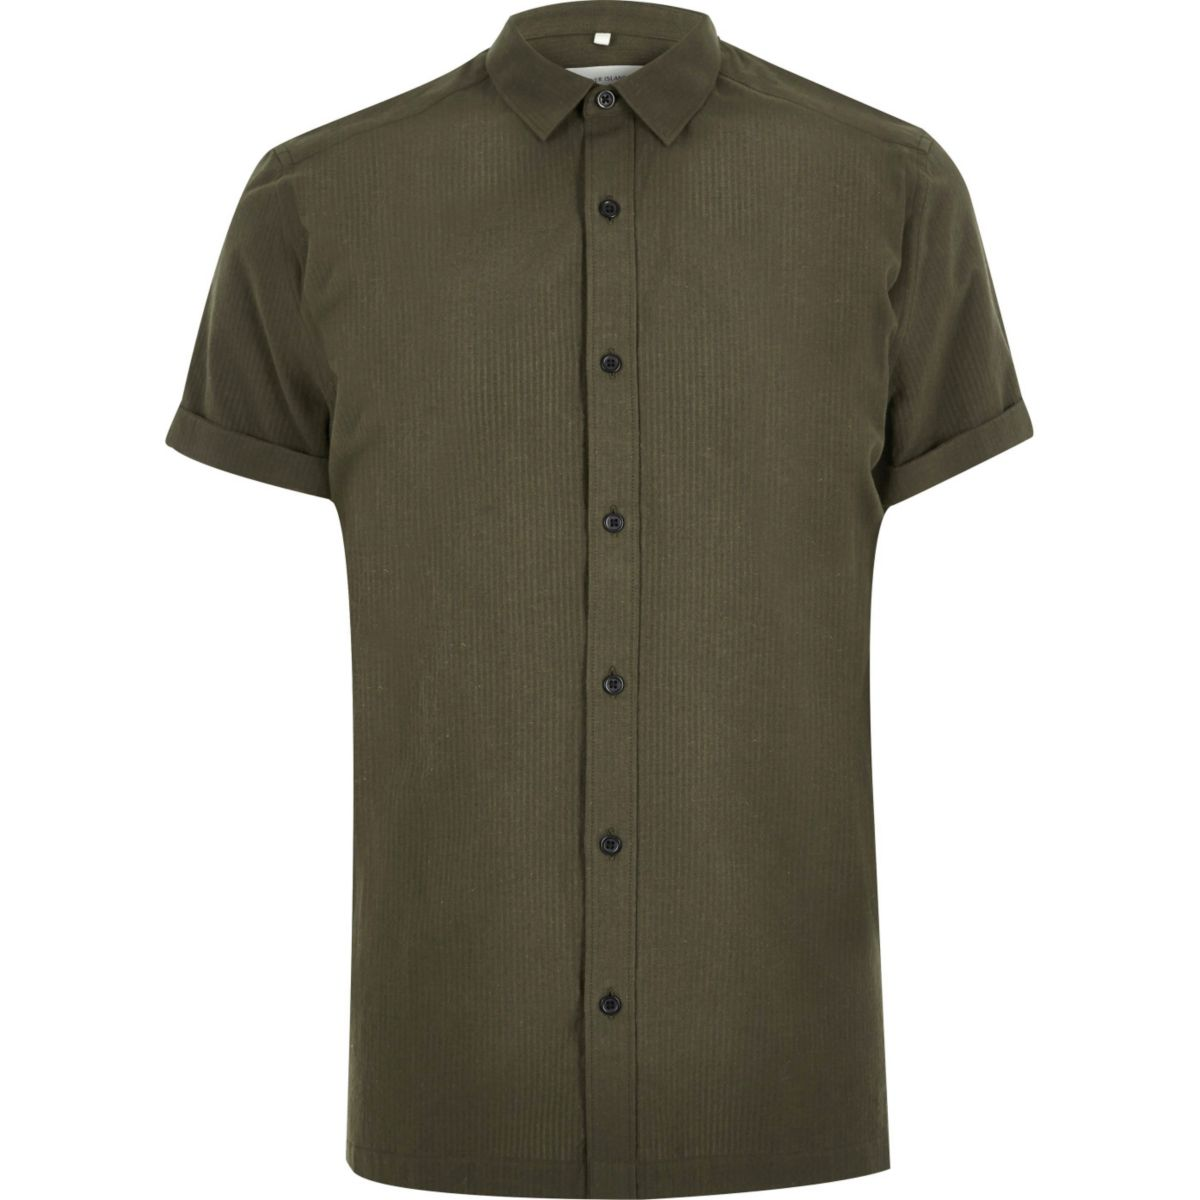 Green seersucker short sleeve shirt shirts sale men for Mens seersucker shirts on sale